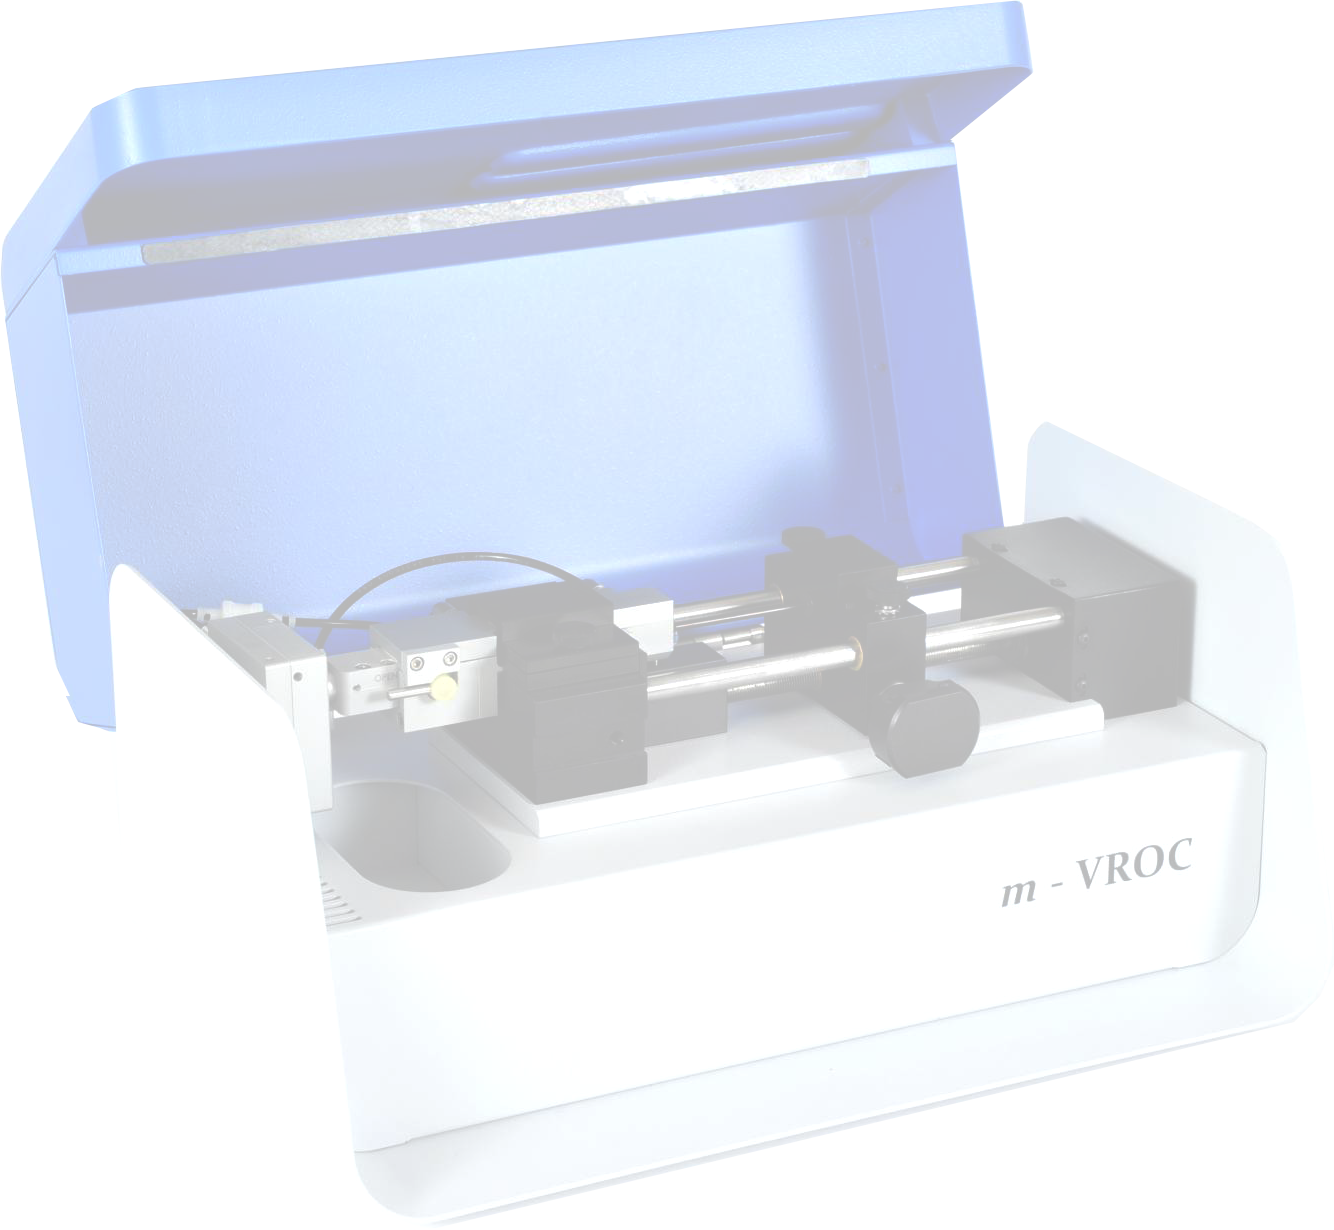 Small-sample viscometer, m-VROC